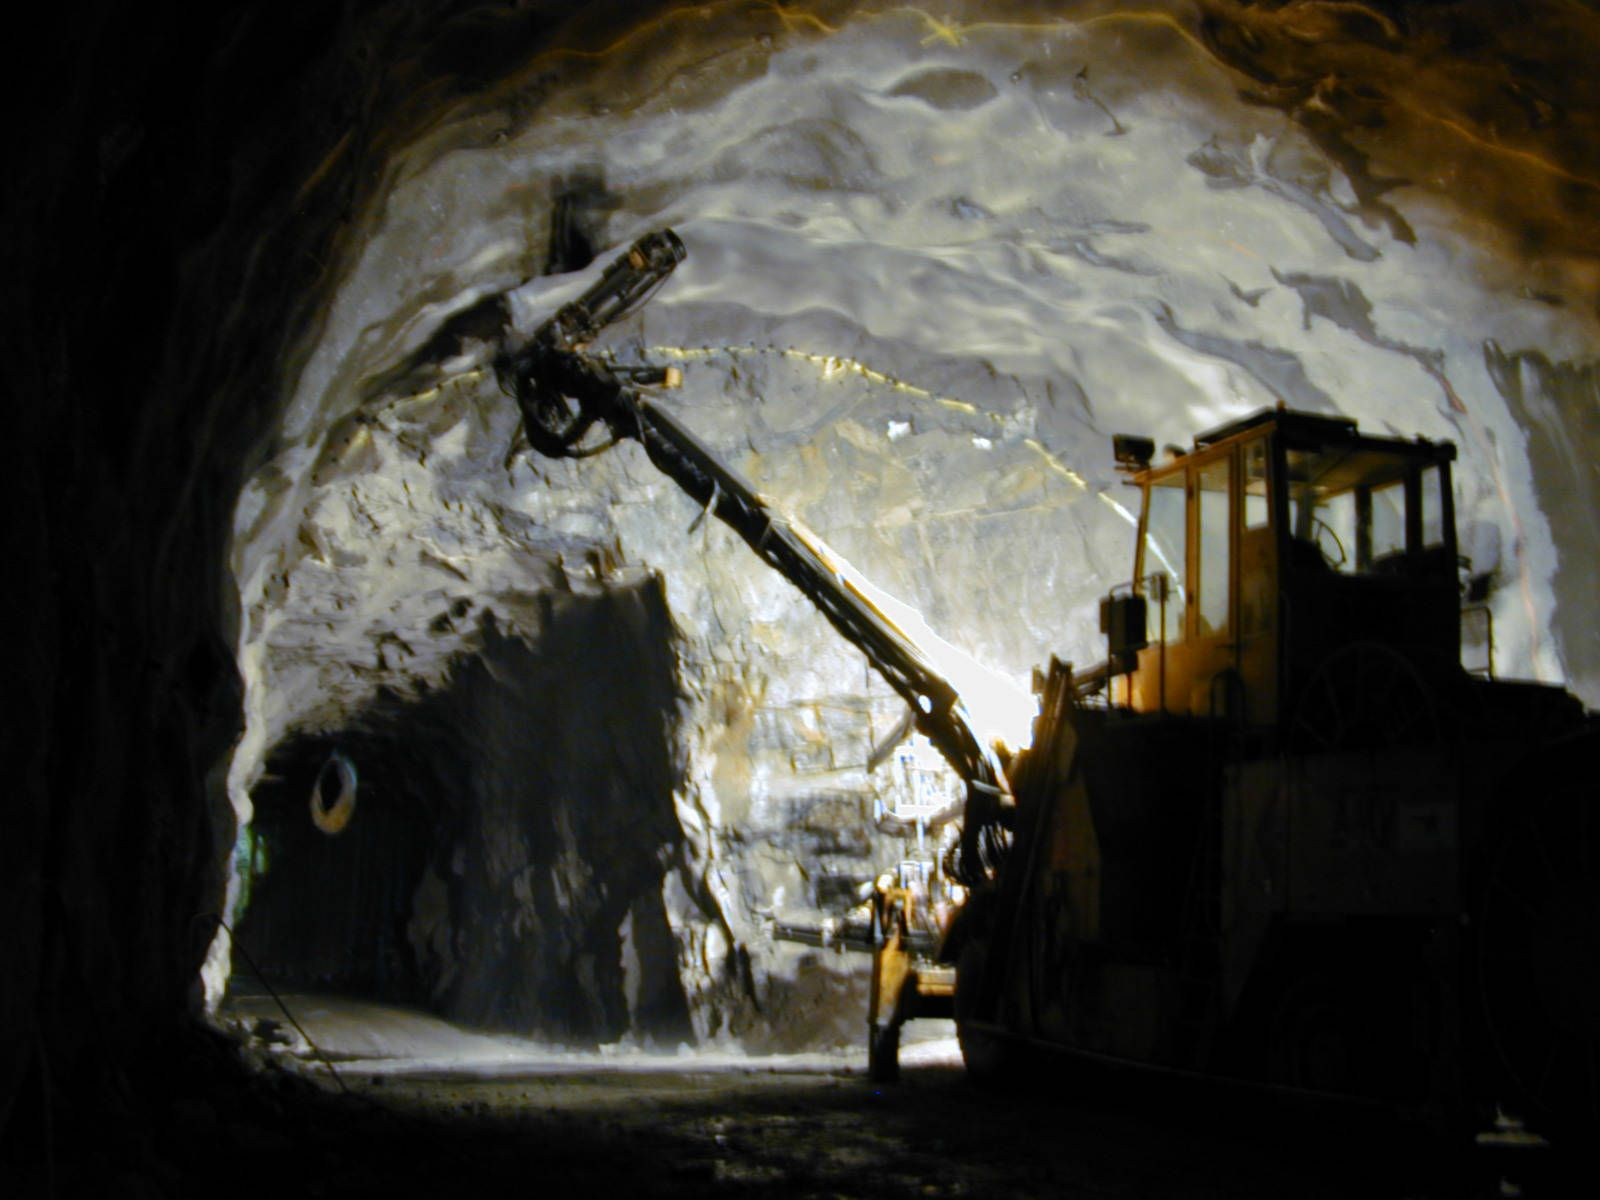 Foto: Pilot tunnel under area with lack of rock overburden, stabilized by ground freezing.